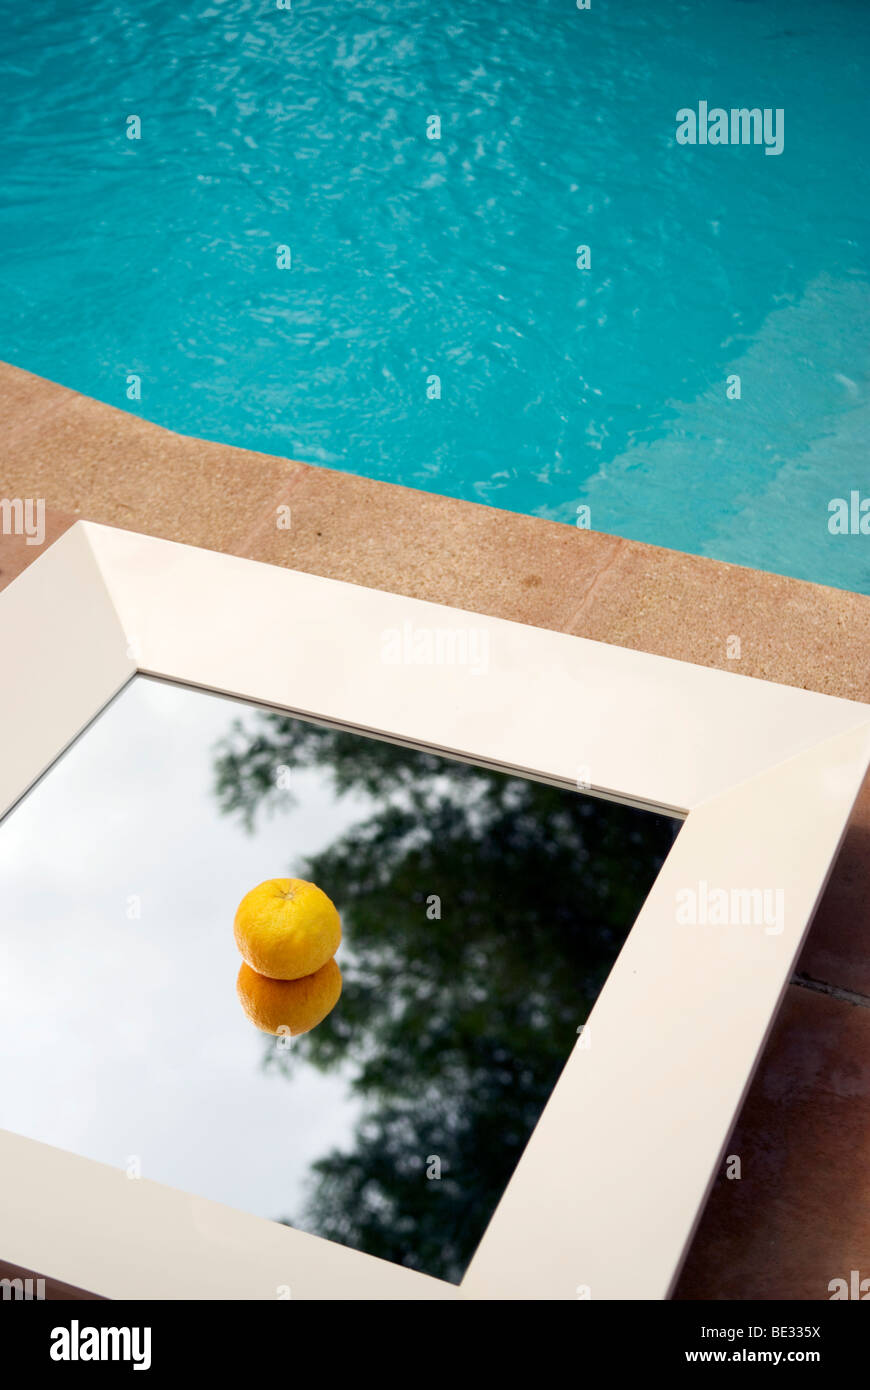 a single tangerine lies in middle of flat white framed mirror by the side of a swimming pool - Stock Image